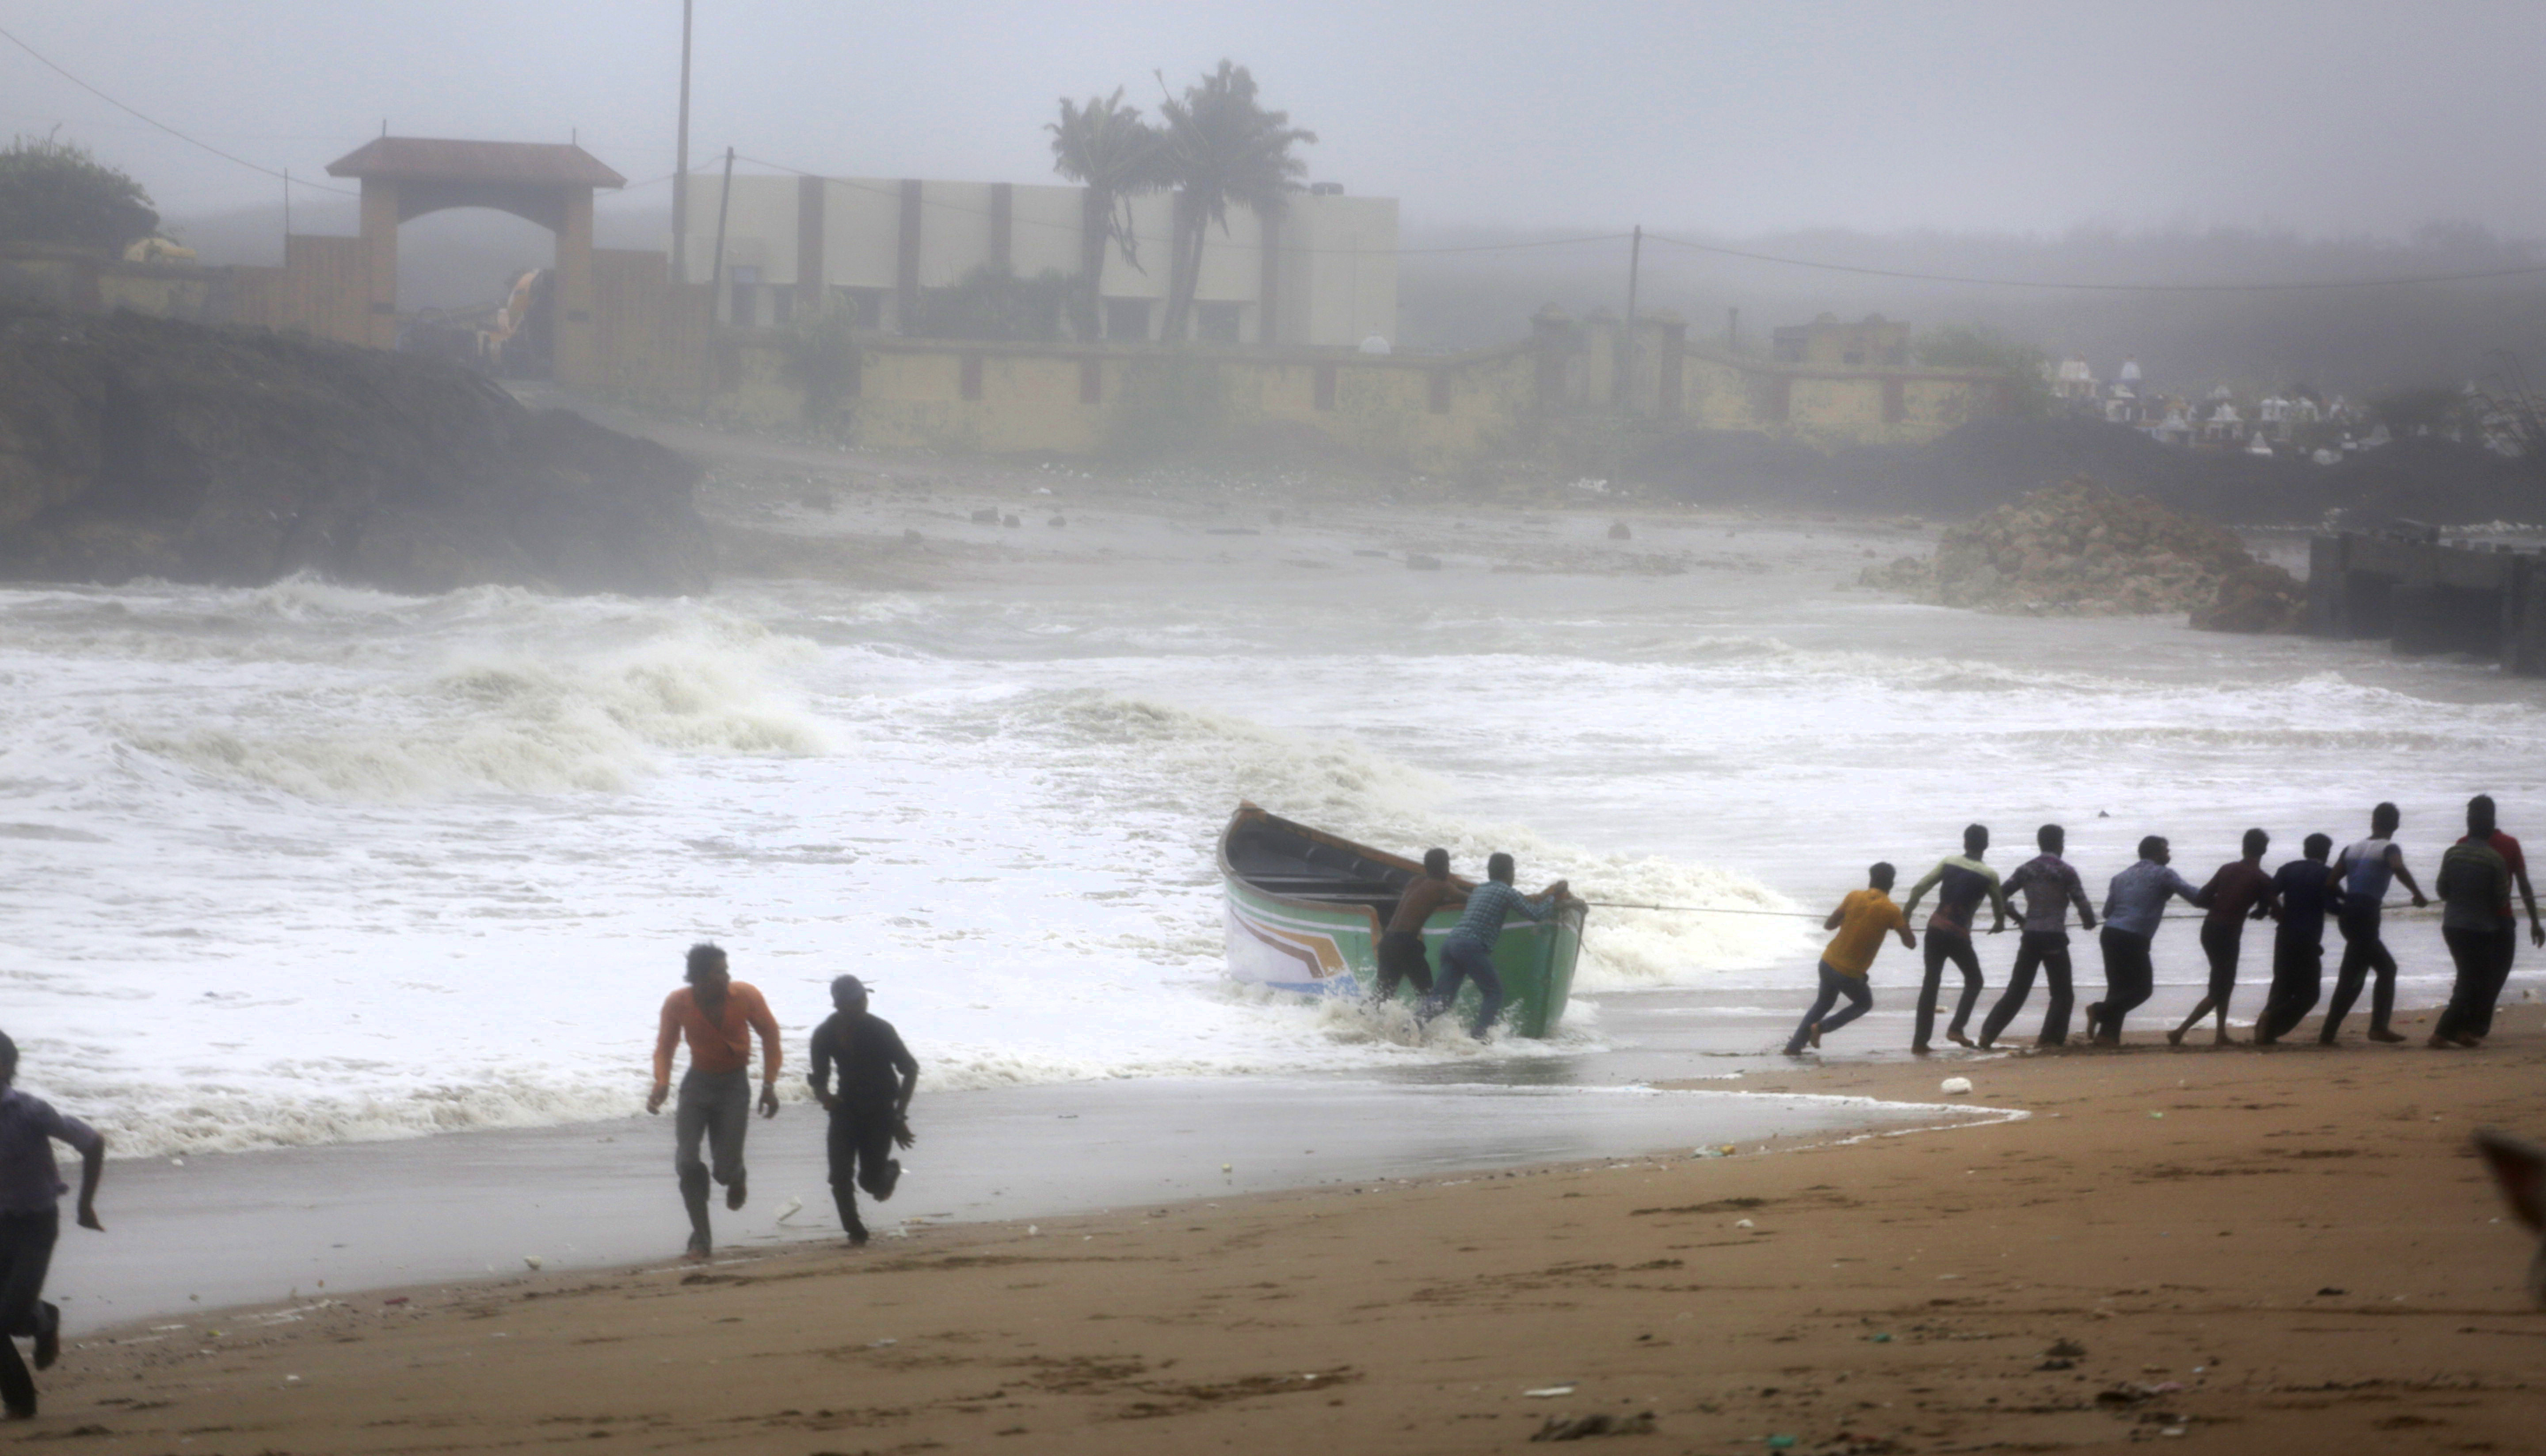 People try to pull back a fishing boat that was carries away by waves on the Arabian Sea coast as others run to take shelter in Veraval, India, on June 13, 2019.